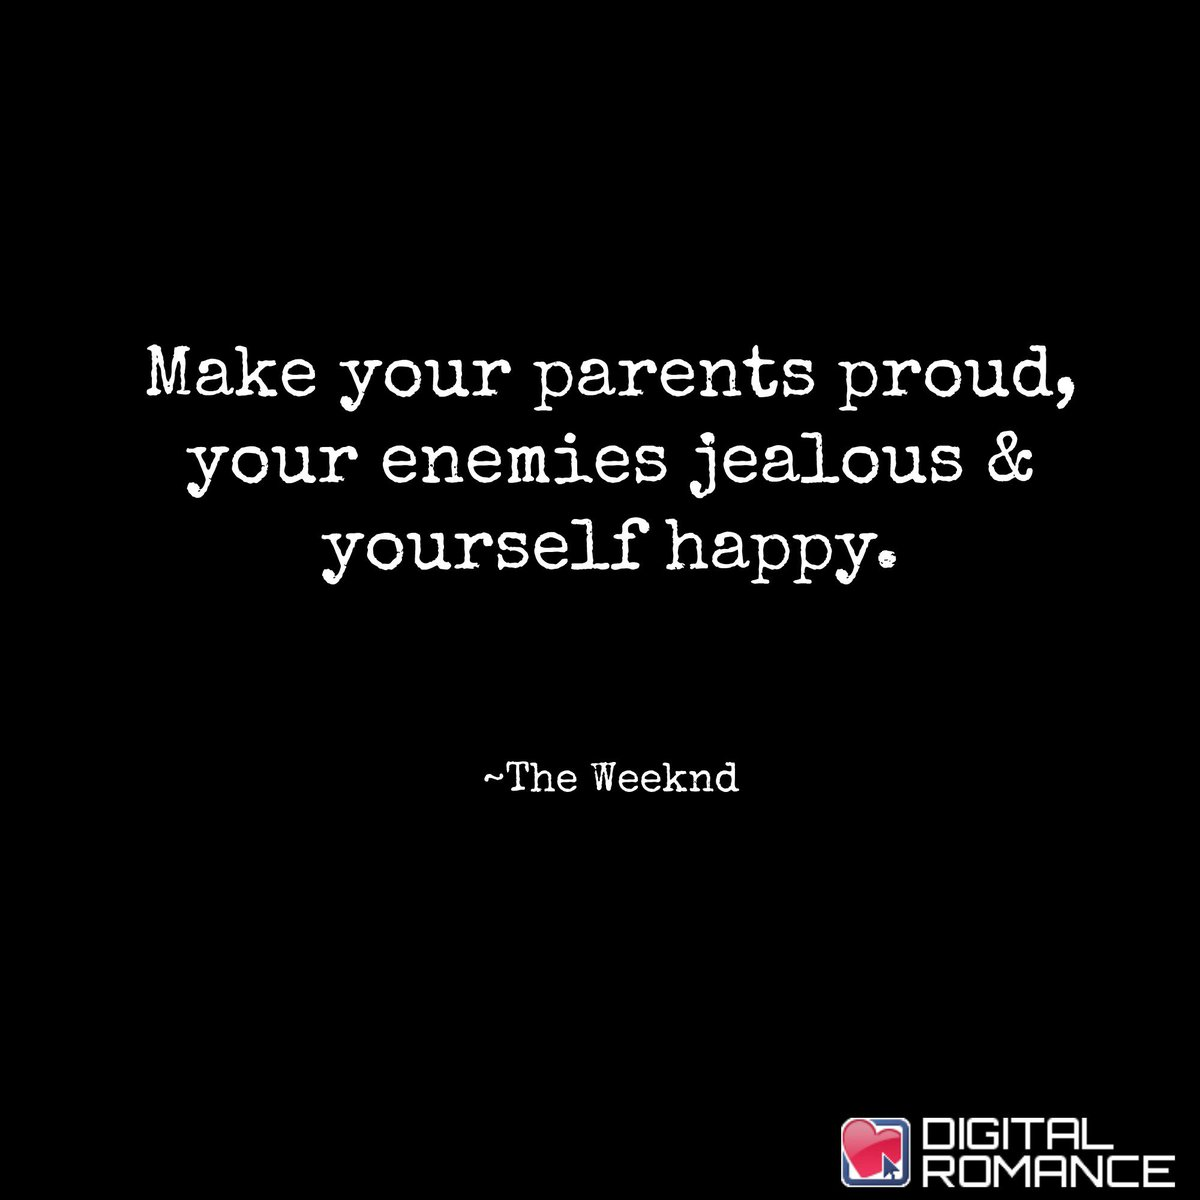 "Make Your Mom Proud Quotes: Digital Romance Inc On Twitter: ""Make Your Parents Proud"